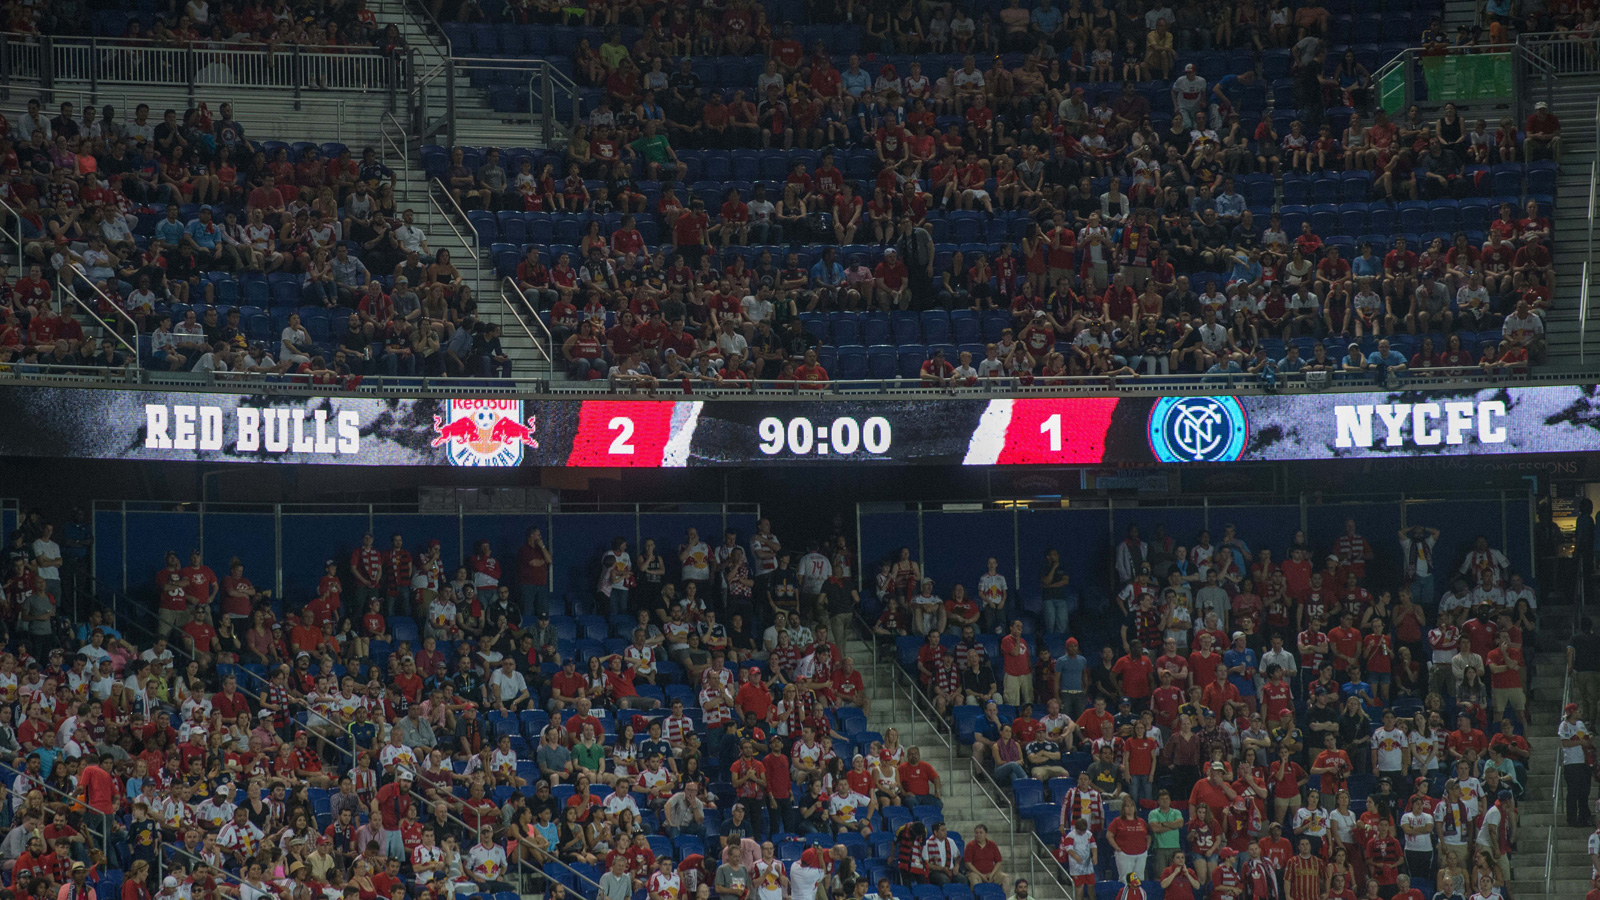 The scoreboard tells all, as the Red Bulls win the inaugural MLS match against expansion club NYCFC on May 10, 2015 at Red Bull Arena.